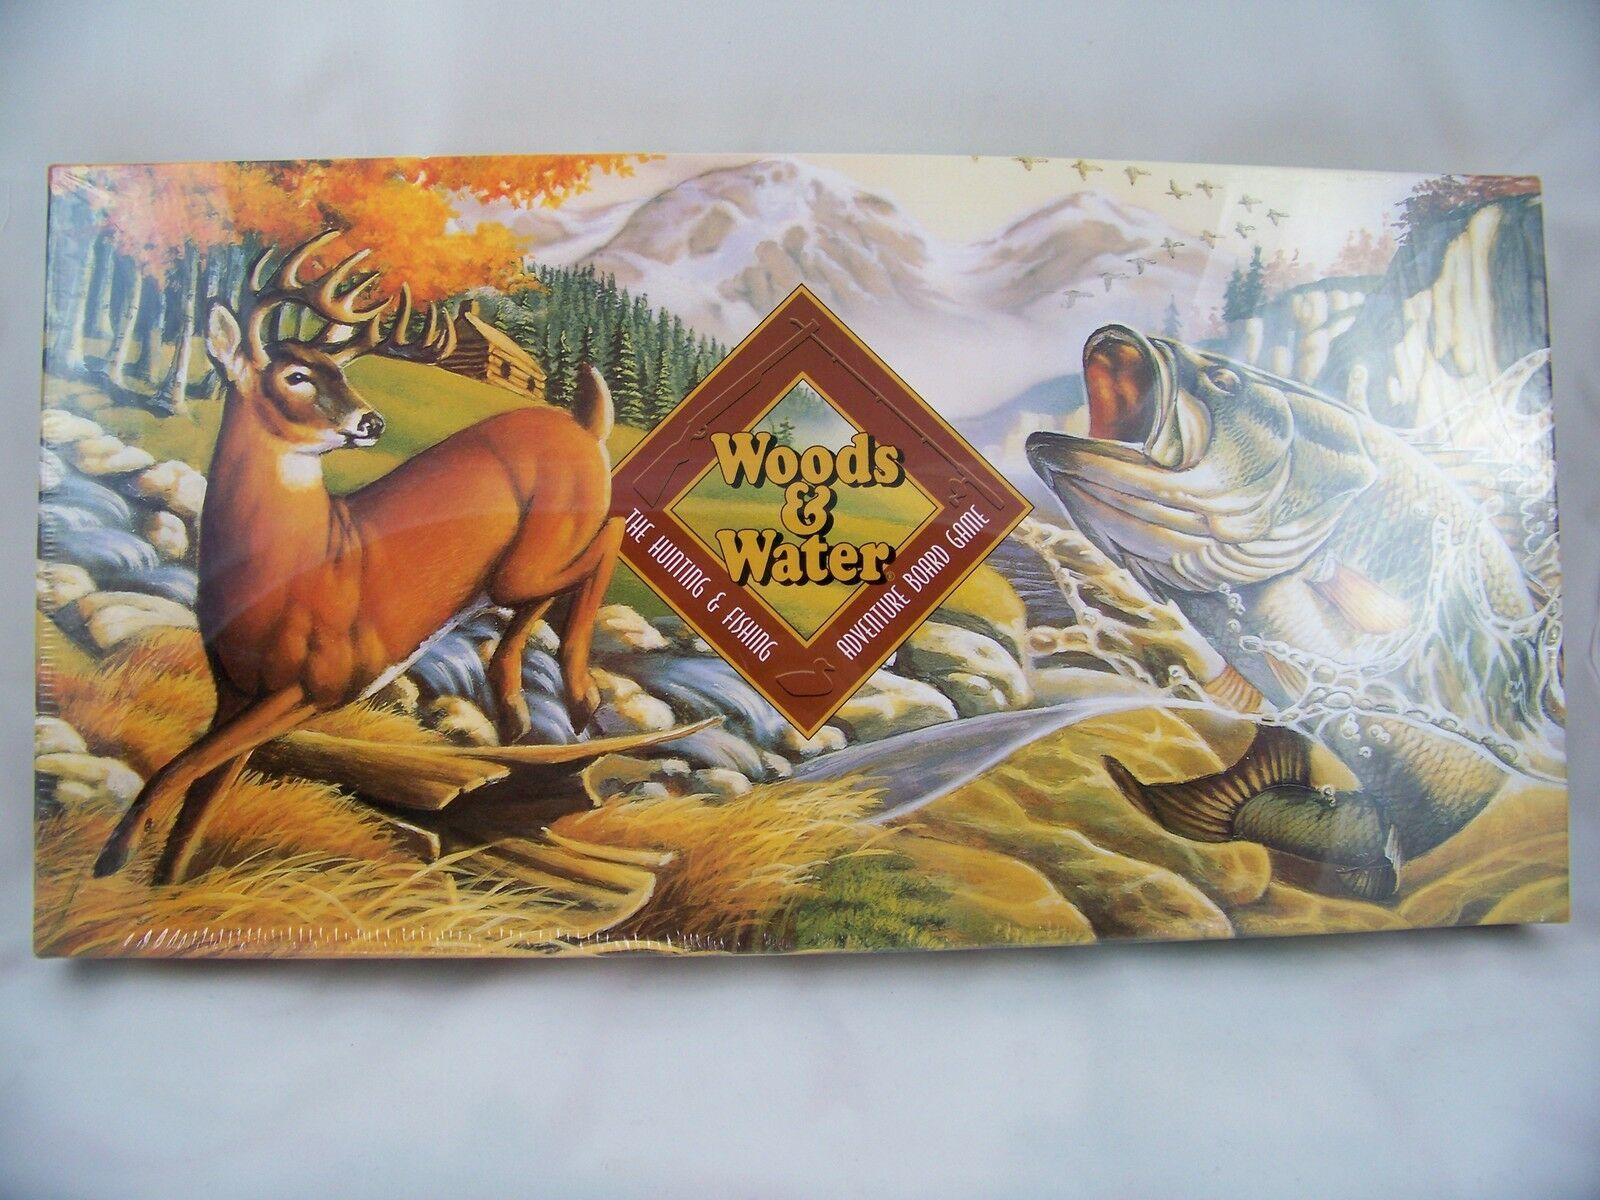 Primary image for Woods and Water Hunting & Fishing Board Game Adventure Wildlife Birthday Gift